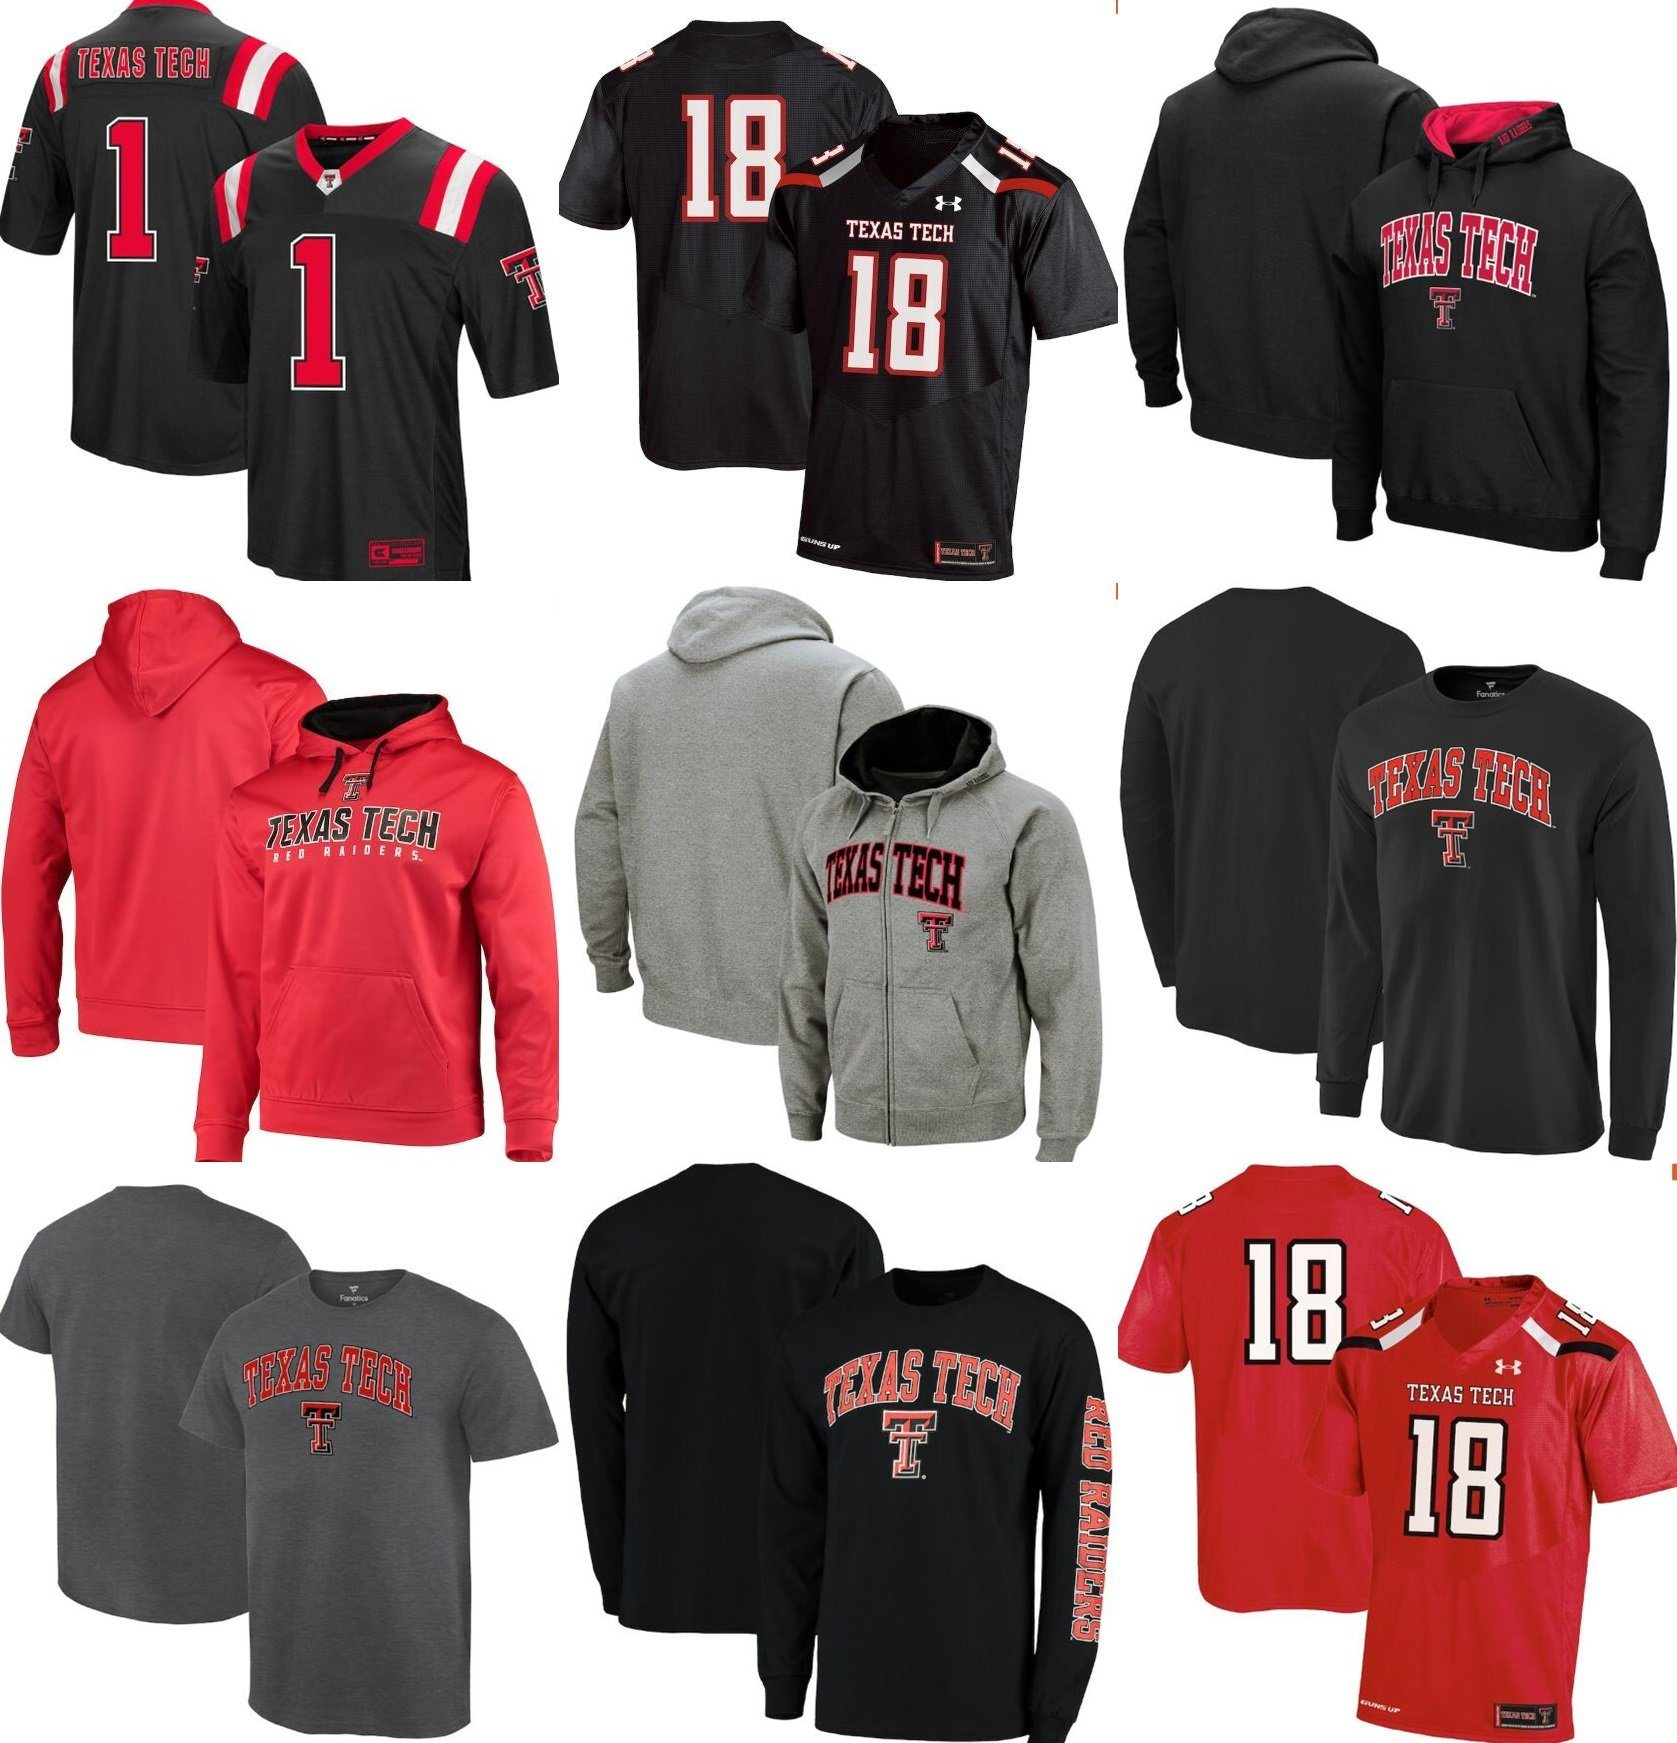 reputable site d1196 568f9 [Hot Item] Customize Texas Tech Red Raiders Ncaa Jersey &Pullover Hoodie &  T-Shirt